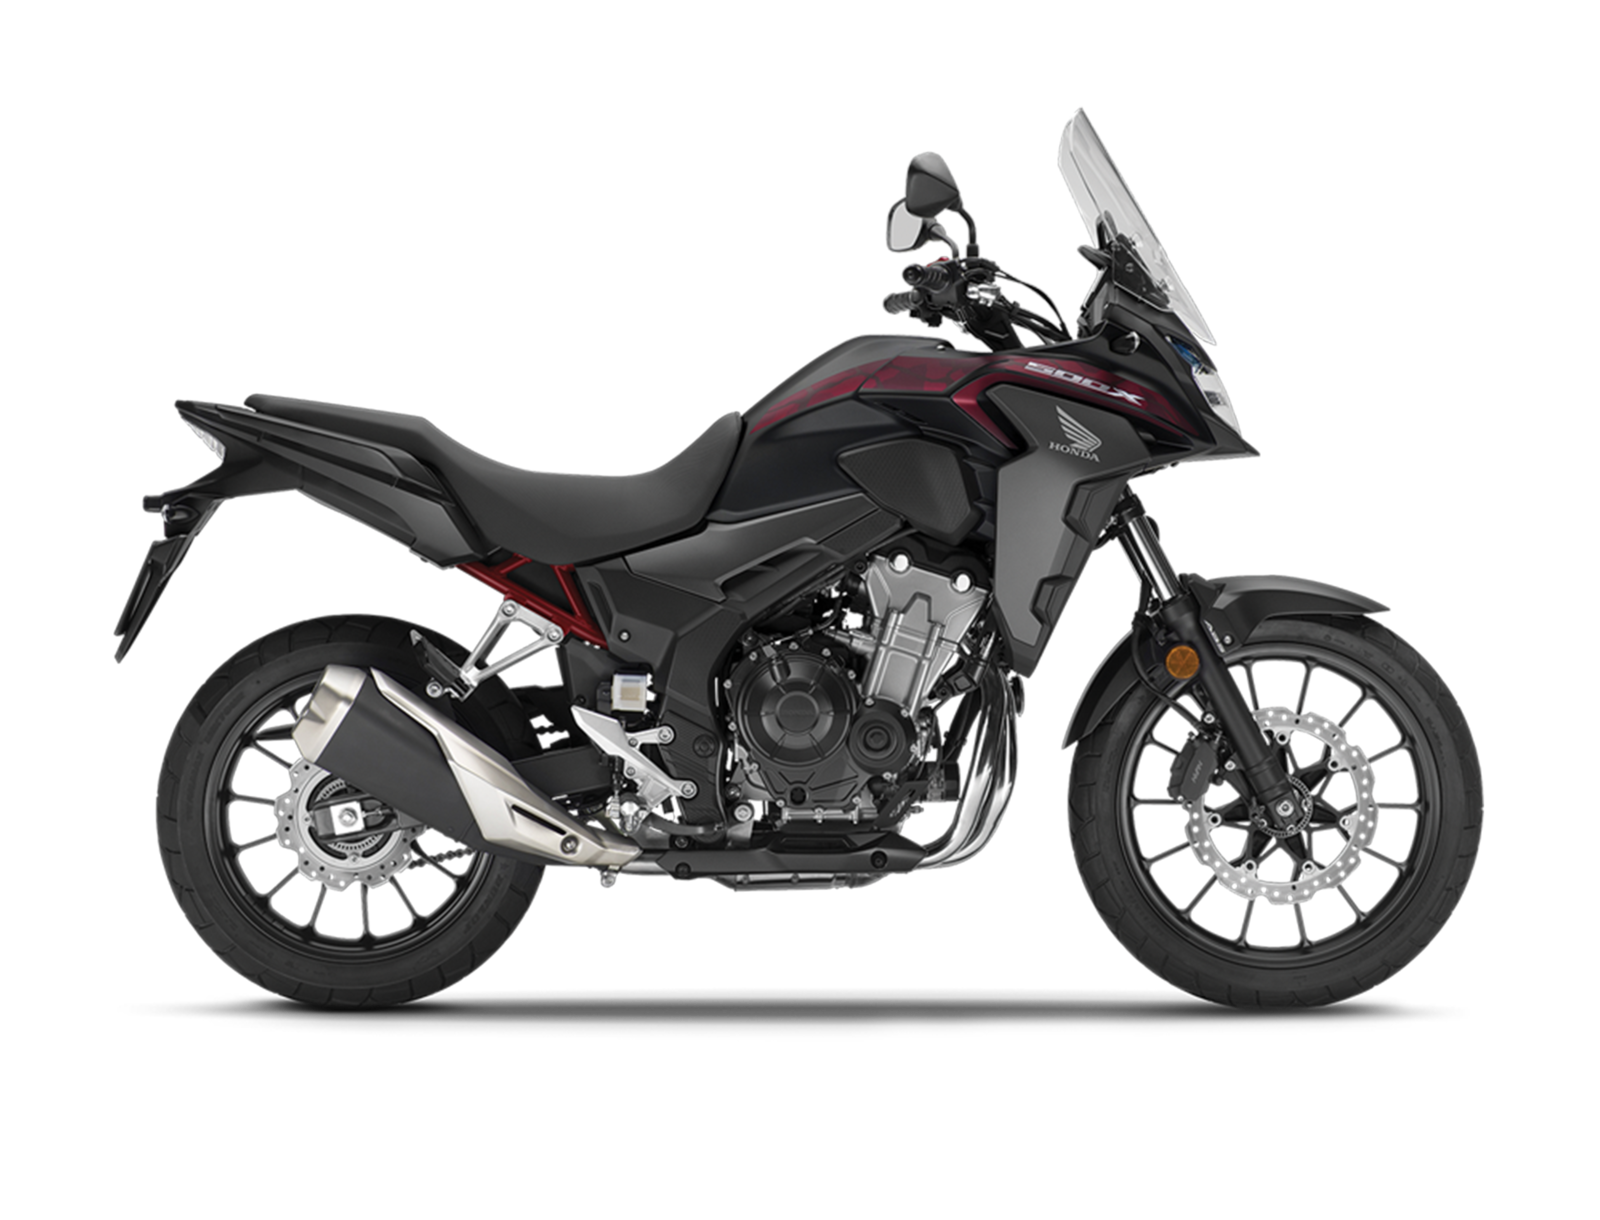 10-motorcycles-perfect-for-beginners-4.png